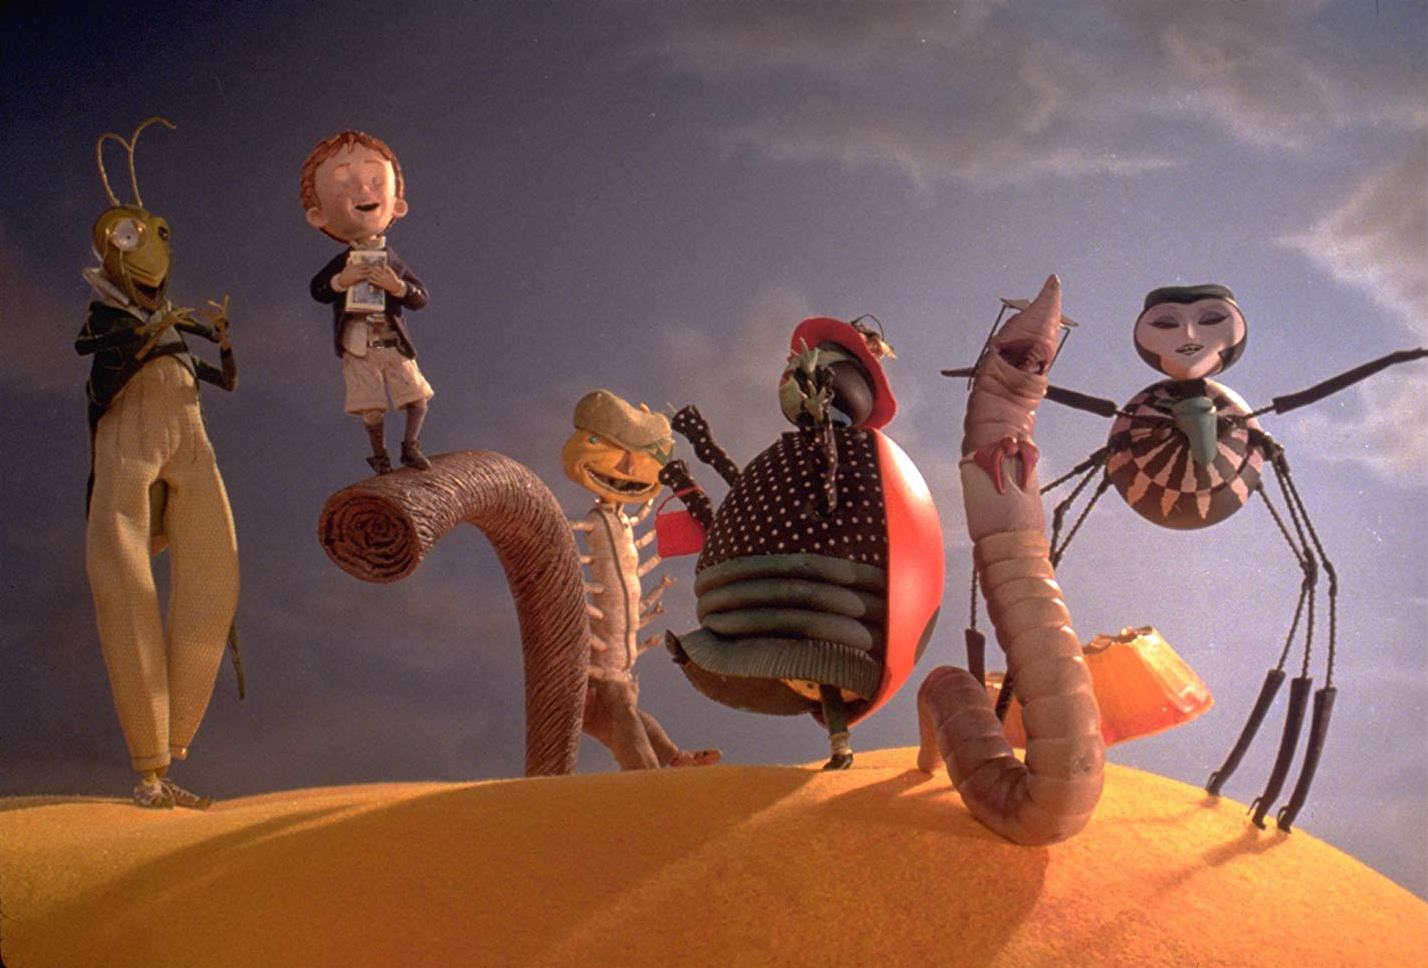 Setting forth on a journey aboard the giant peach - (l to r) Grasshopper (voiced by Simon Callow), James (voiced by Paul Terry), Glowworm (voiced by Miriam Margolyes), Ladybug (voiced by Jane Leeves), Earthworm (voiced by David Thewlis) and Spider (voiced by Susan Sarandon) in James and the Giant Peach (1996)